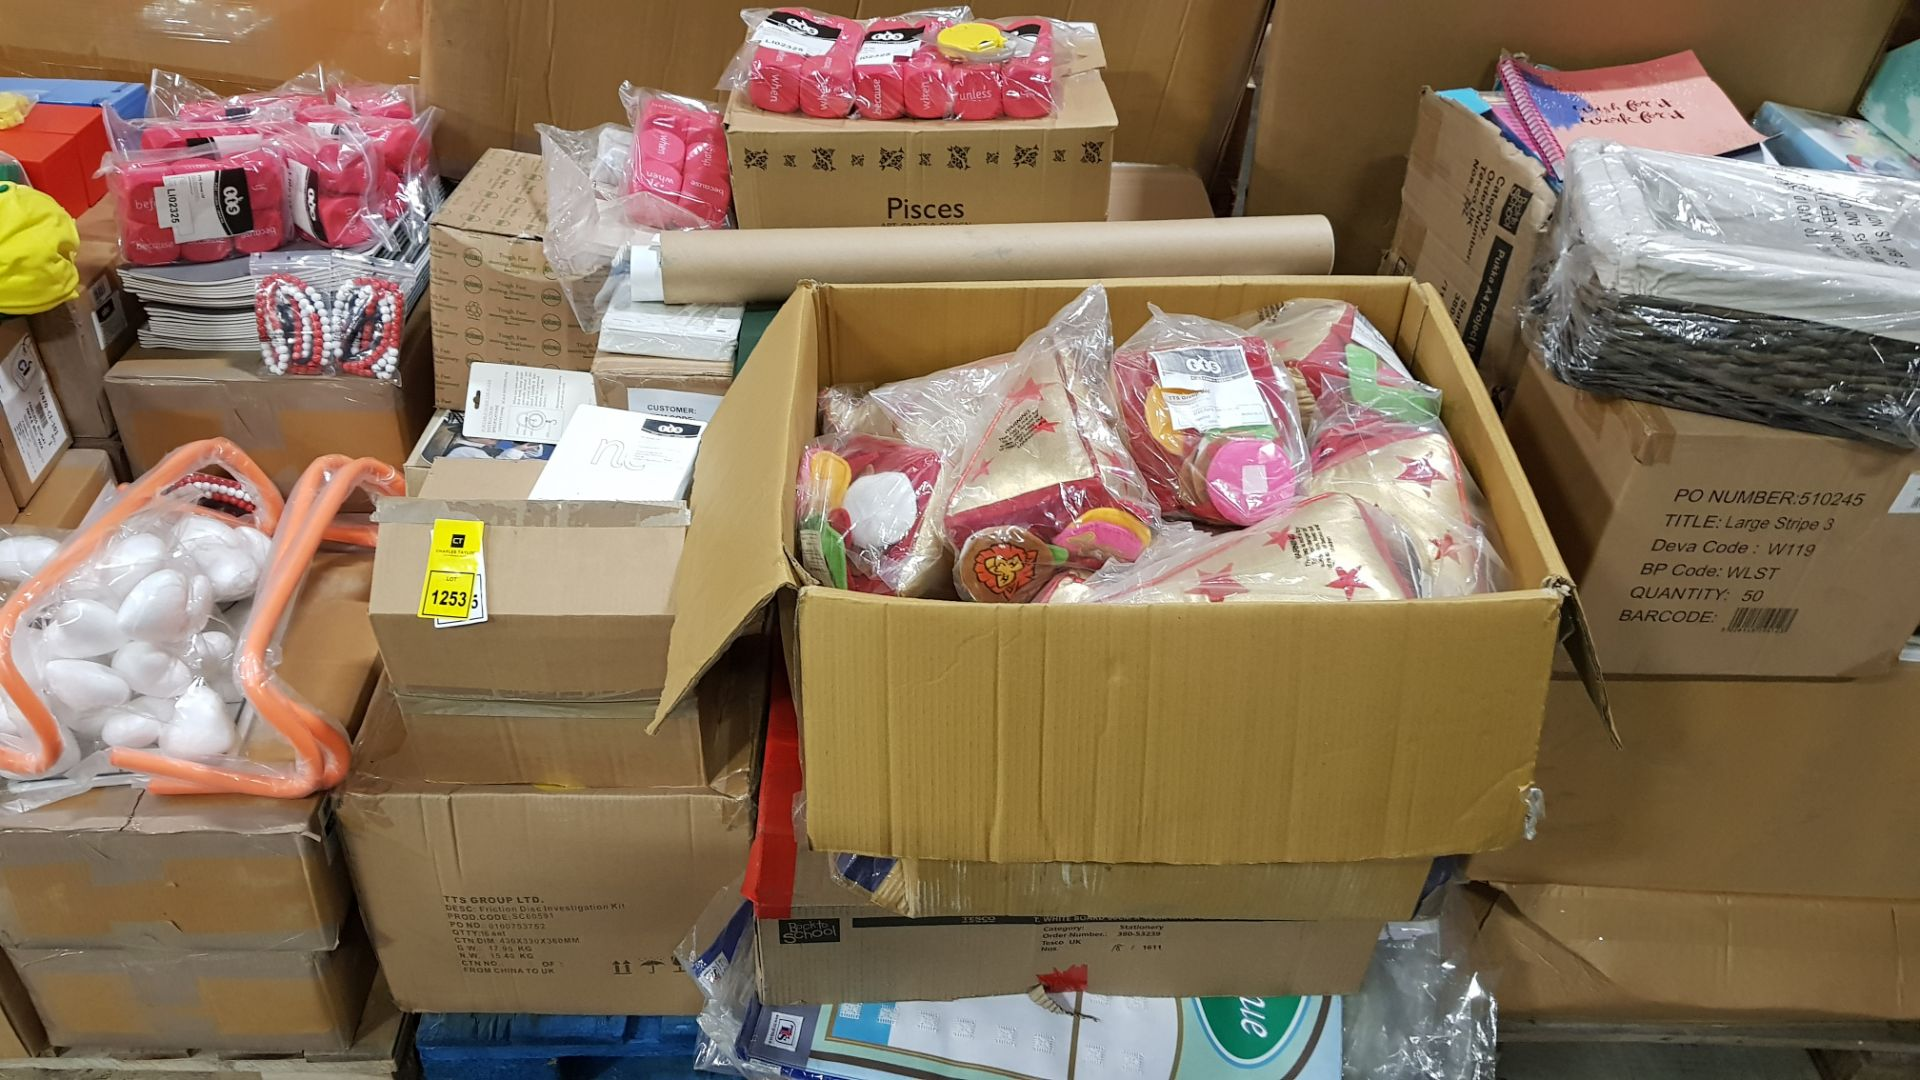 APPROX 1000+ PIECES OF EDUCATION EQIUIPMENT ON A PALLET IE TABLE AWARDS, MESSY LETTERS, WORD DICE,